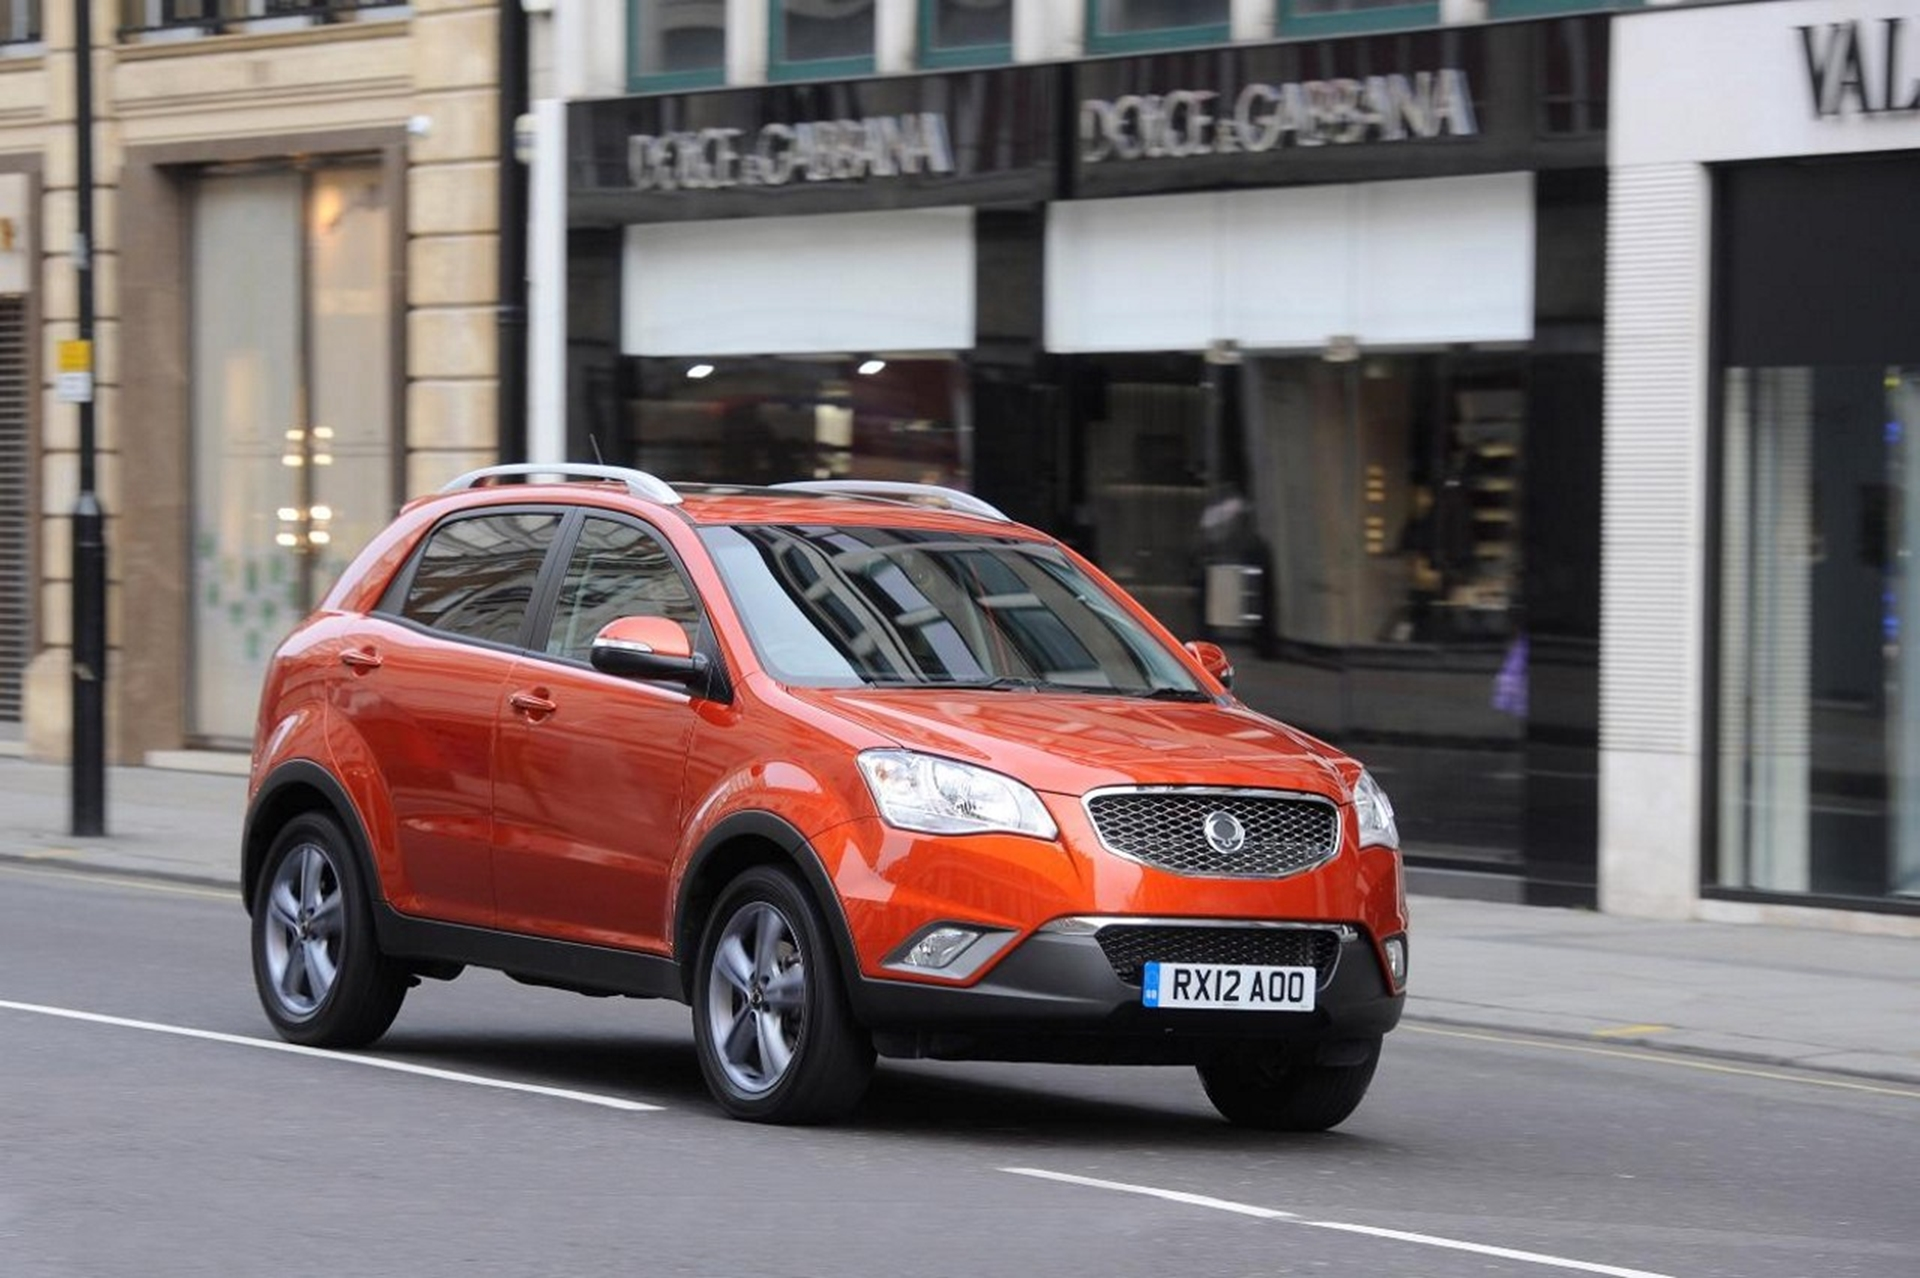 SsangYong London